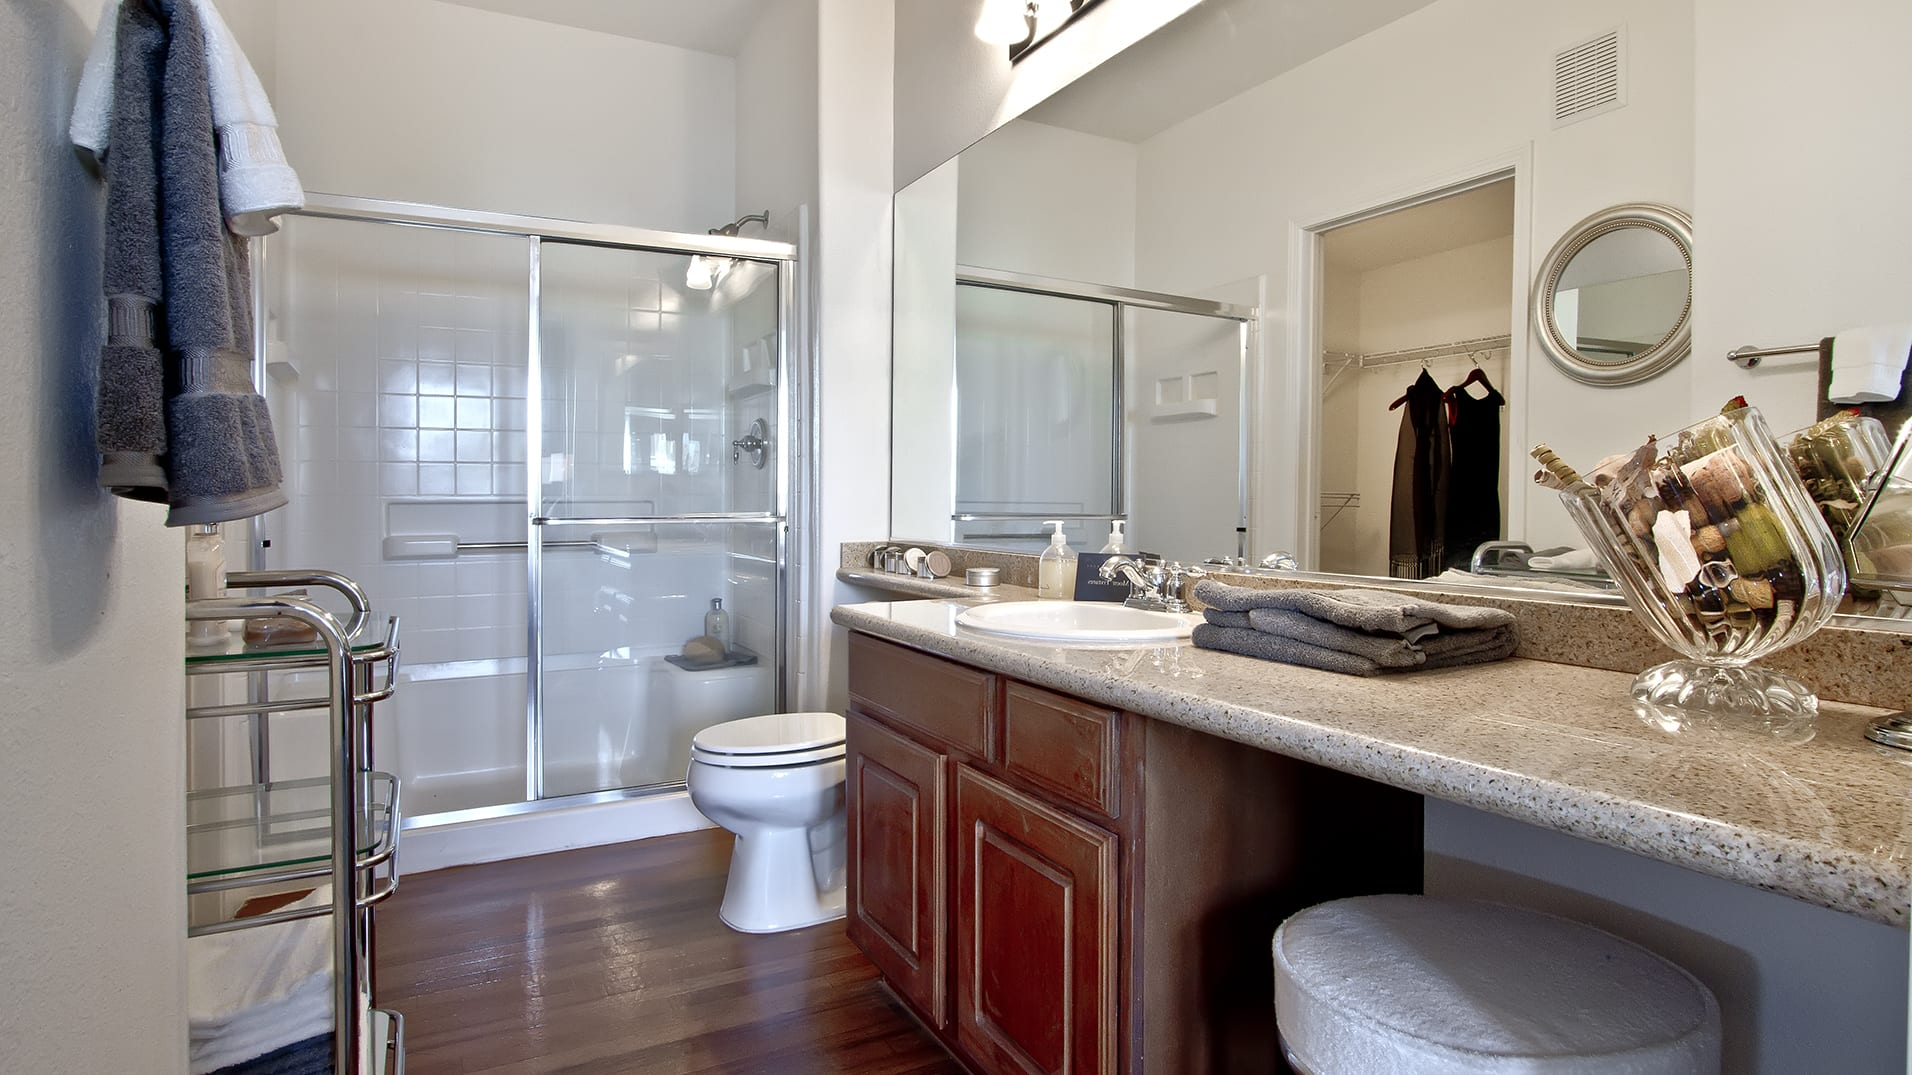 A spacious bathroom with rich wood-like floors, ample storage, and sliding glass shower doors.